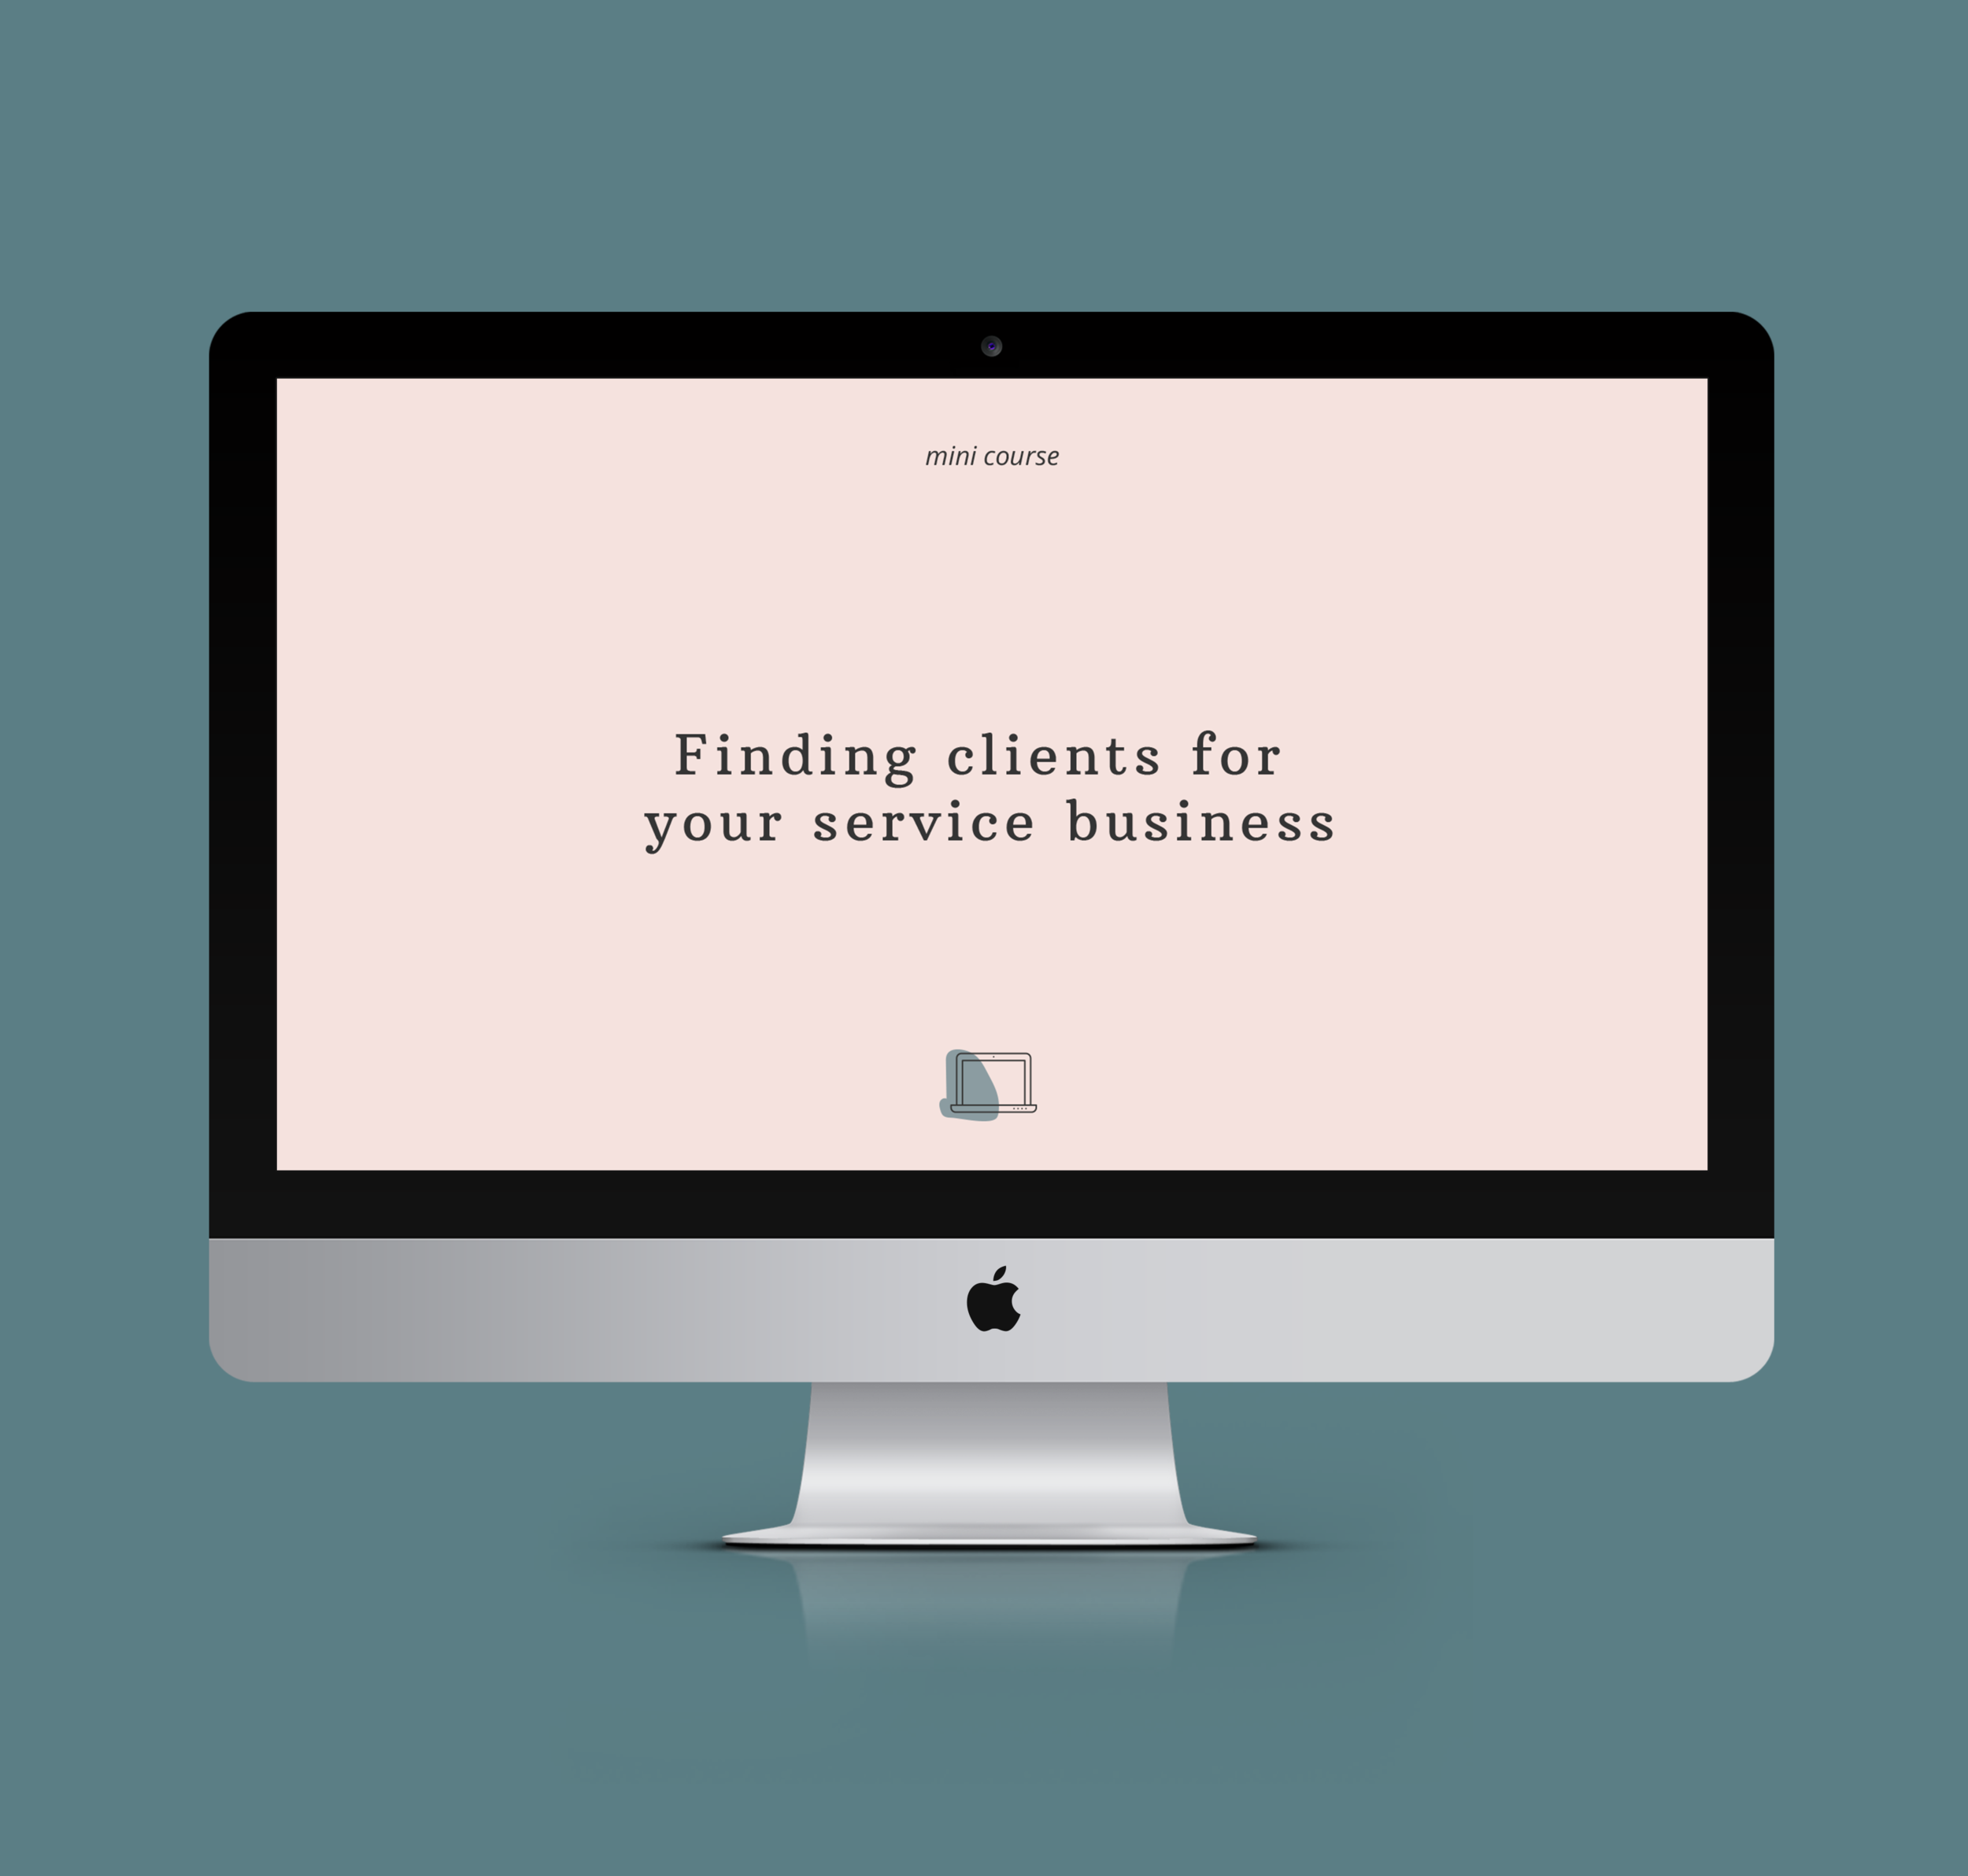 Graphic of an iMac on a blue teal a background with the title of the online course Finding clients for your service business